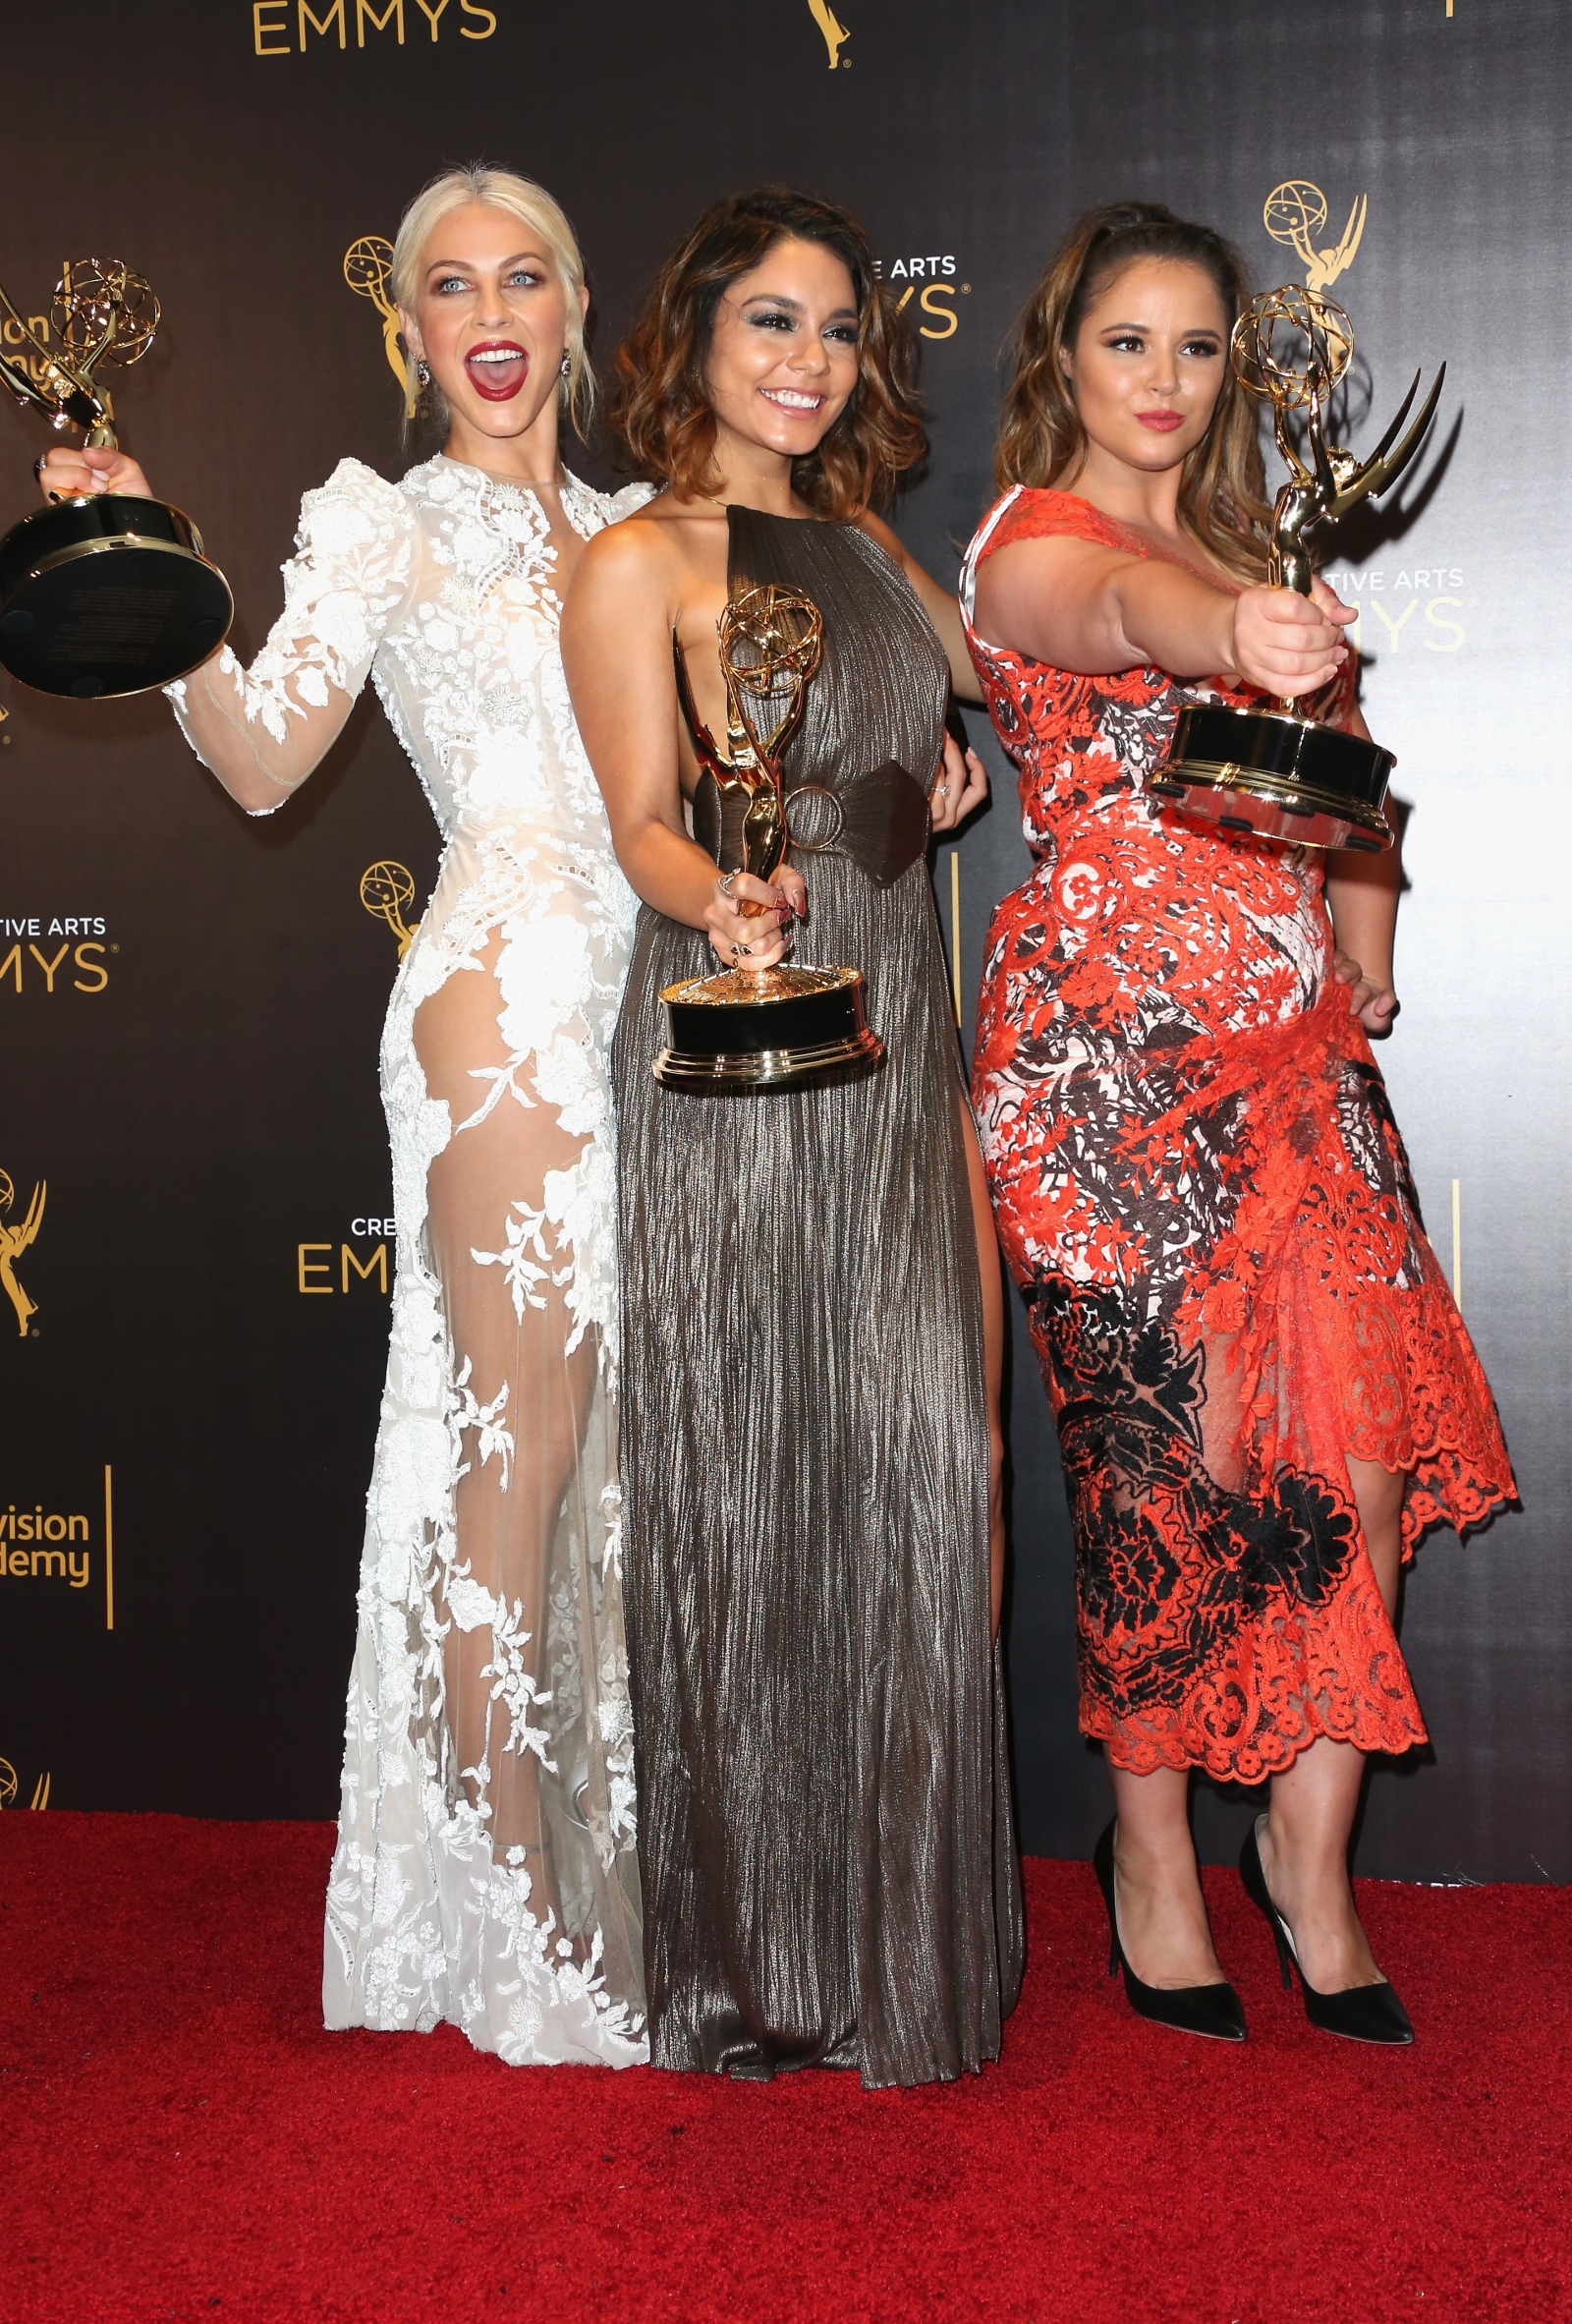 Julianne Hough, Vanessa Hudgens and Kether Donohue